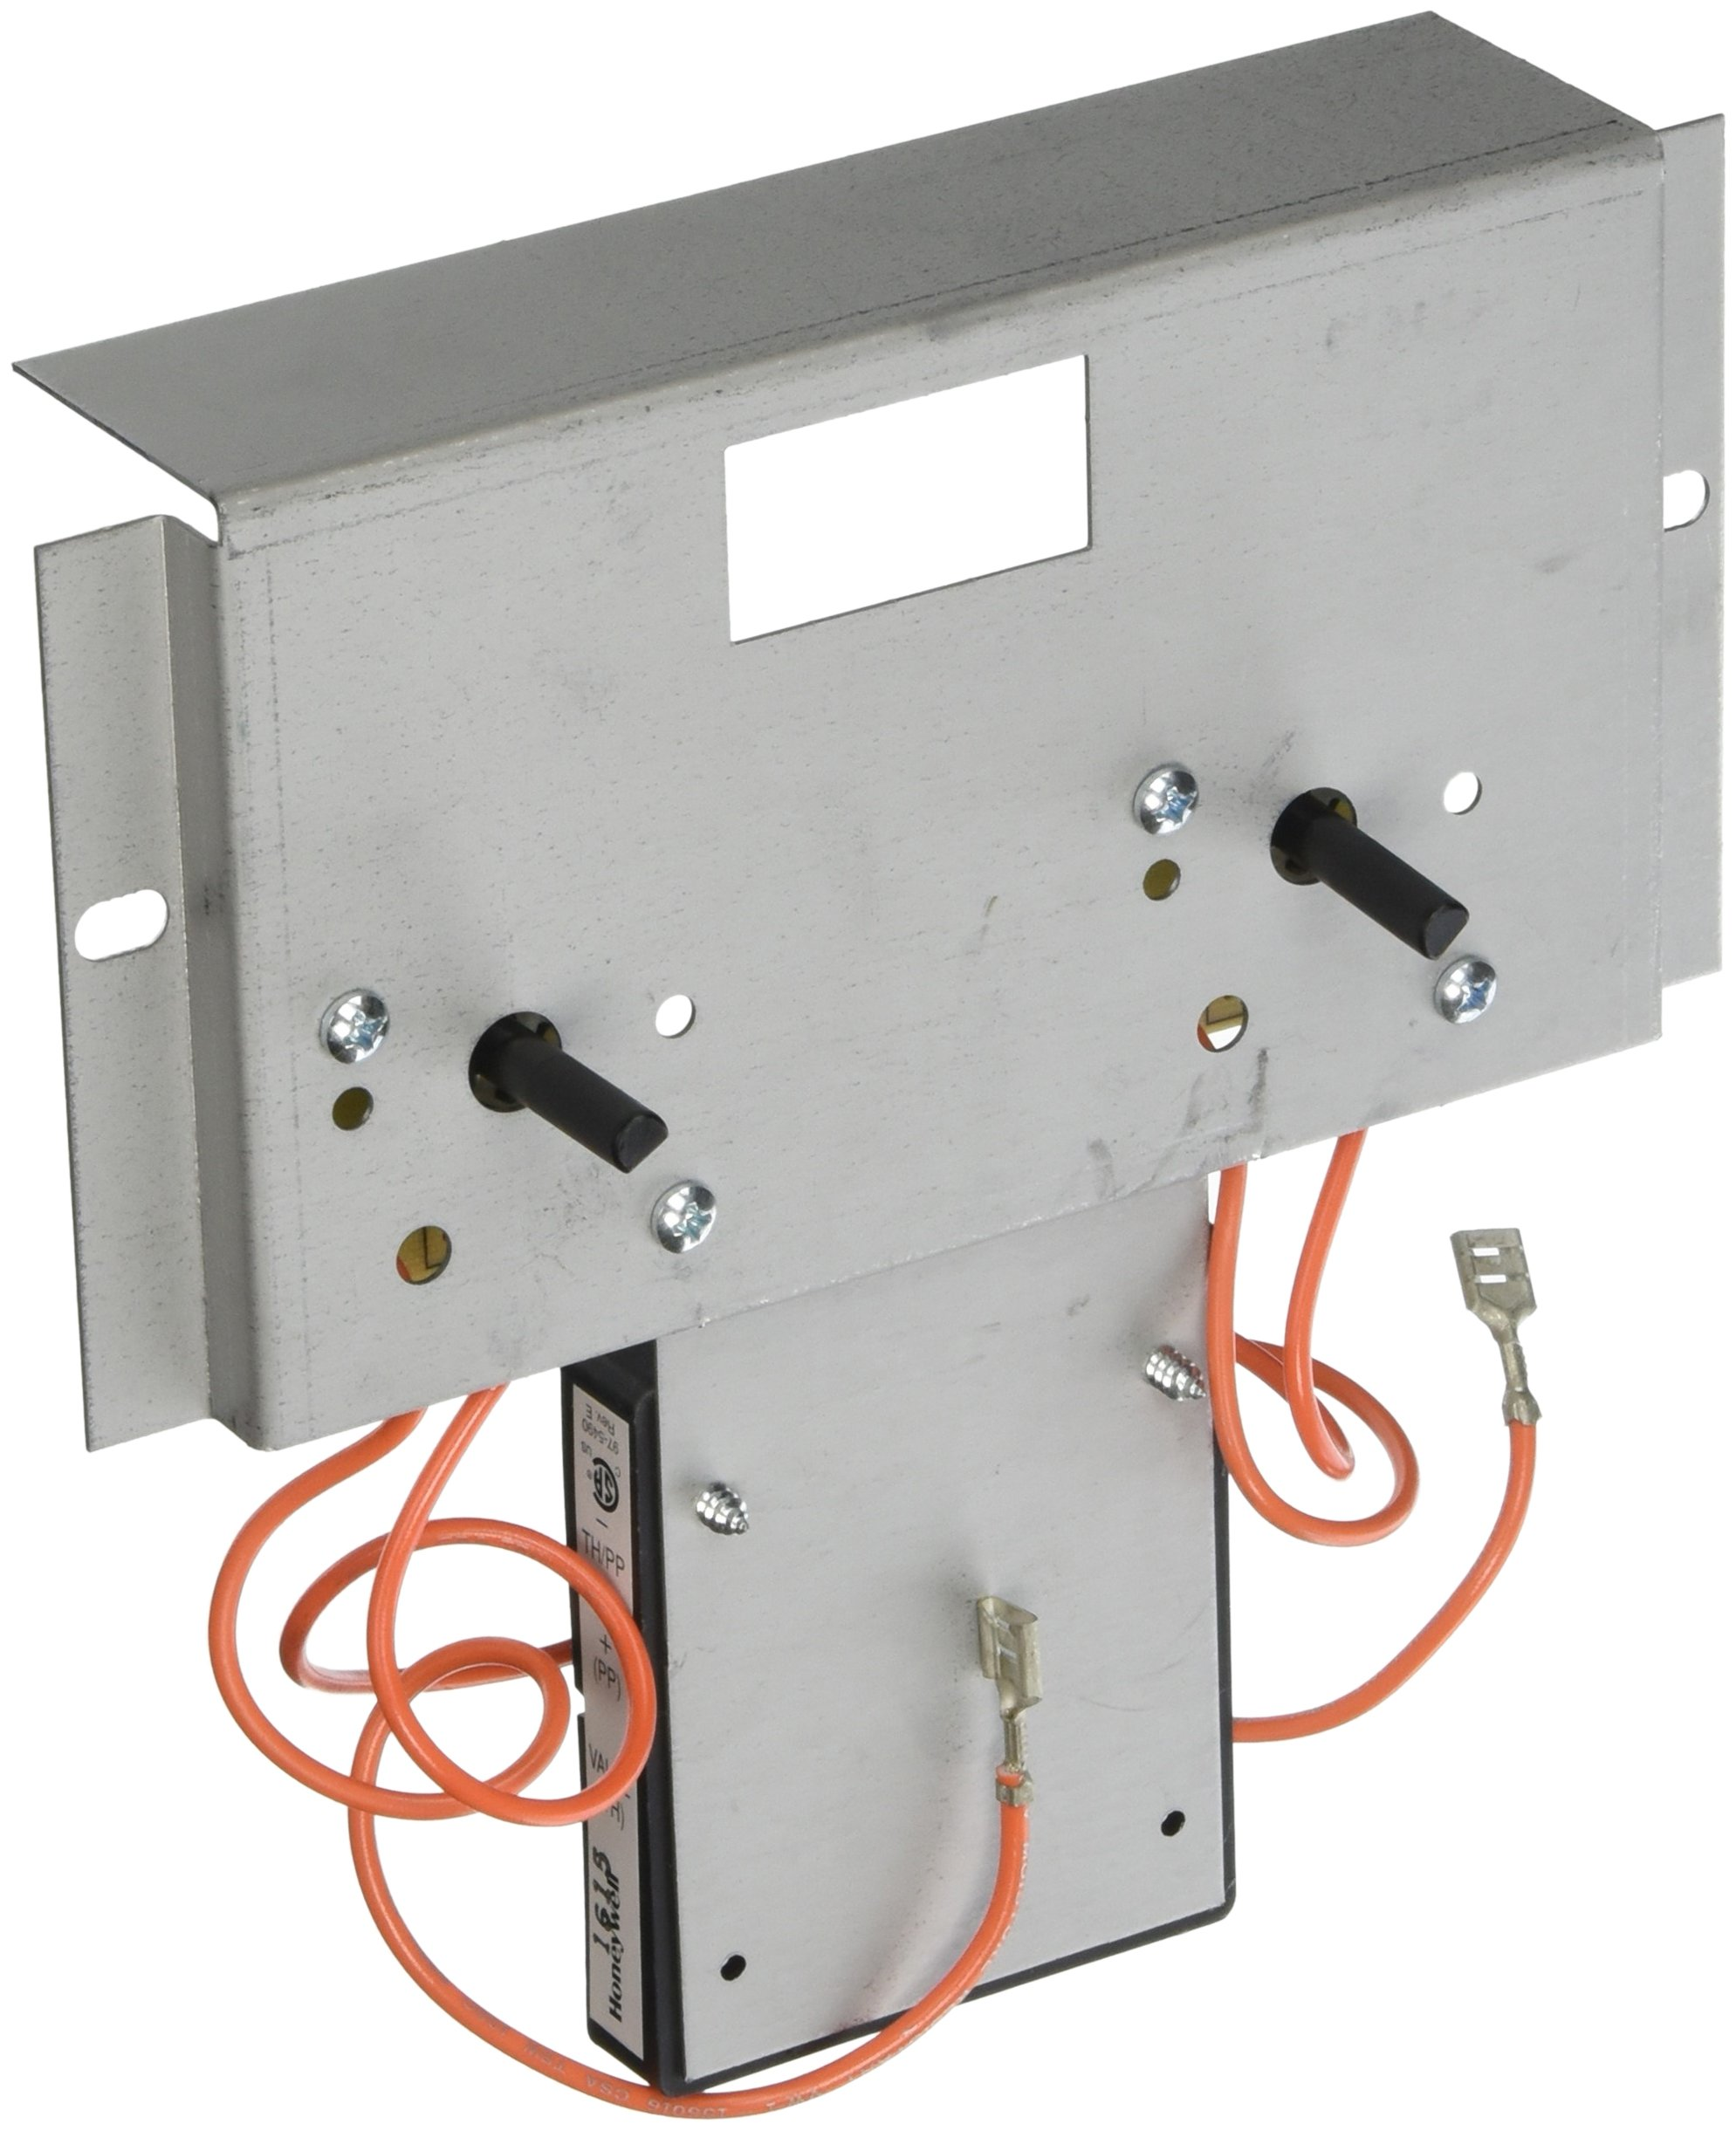 Pentair 471677 Millivolt Electronic Thermostat Replacement MiniMax CH and Plus Pool/Spa Heater by Pentair